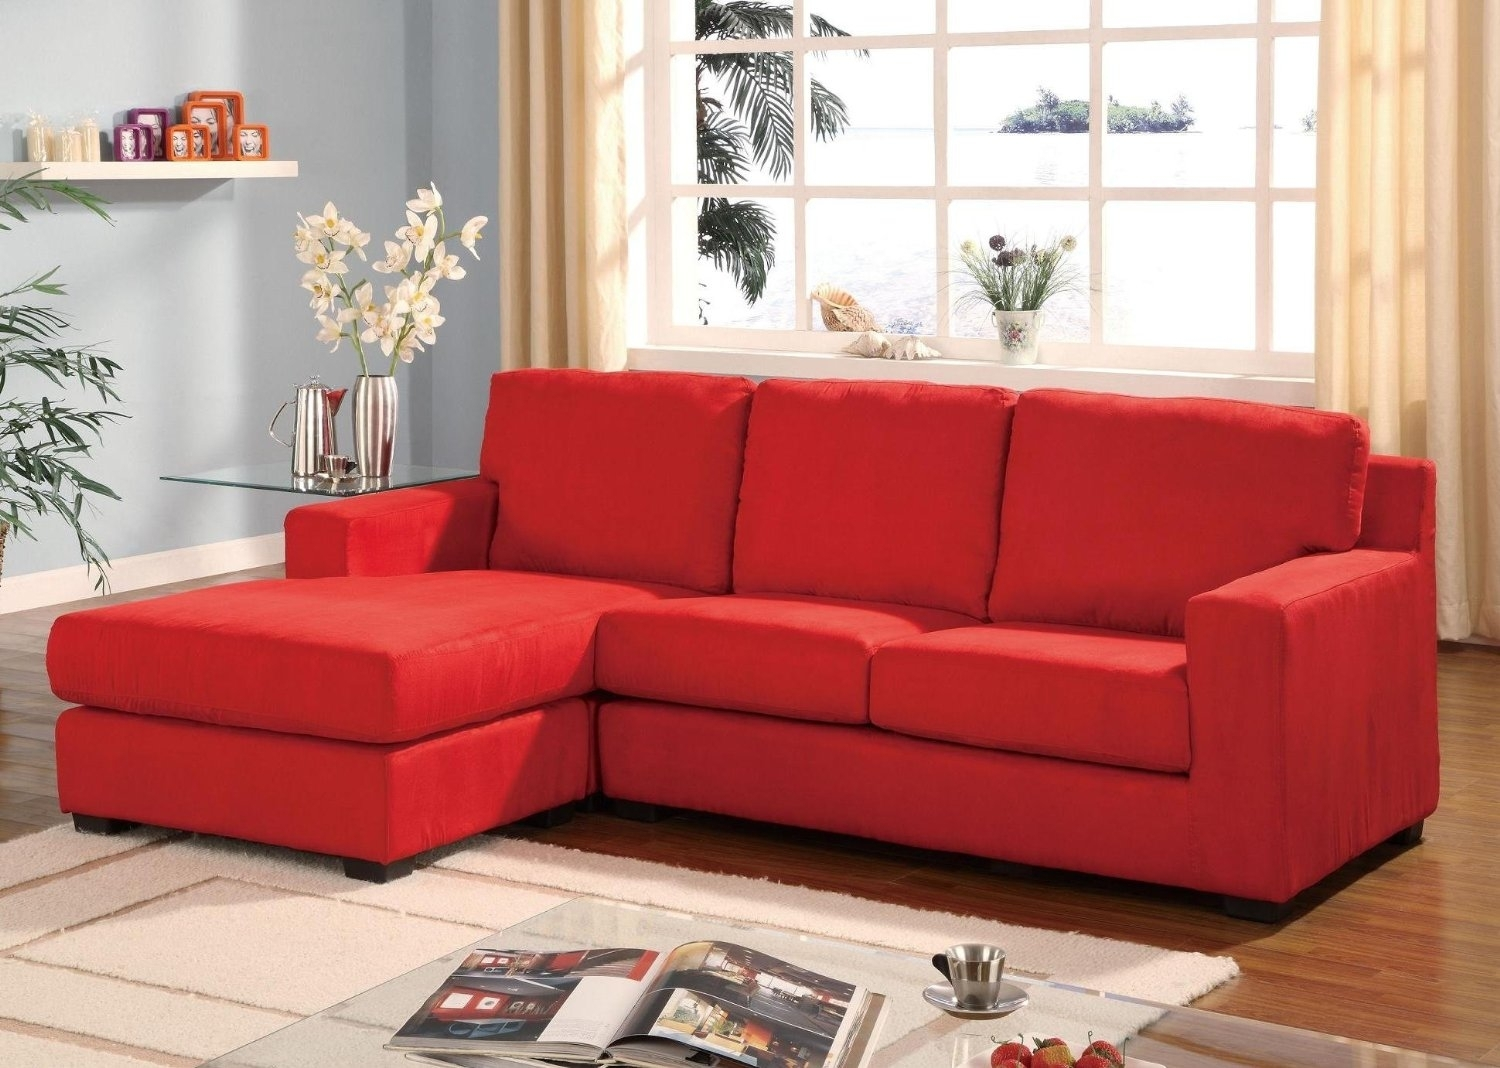 Small Red Sectional Sofa - Home And Textiles inside Small Red Leather Sectional Sofas (Image 6 of 15)